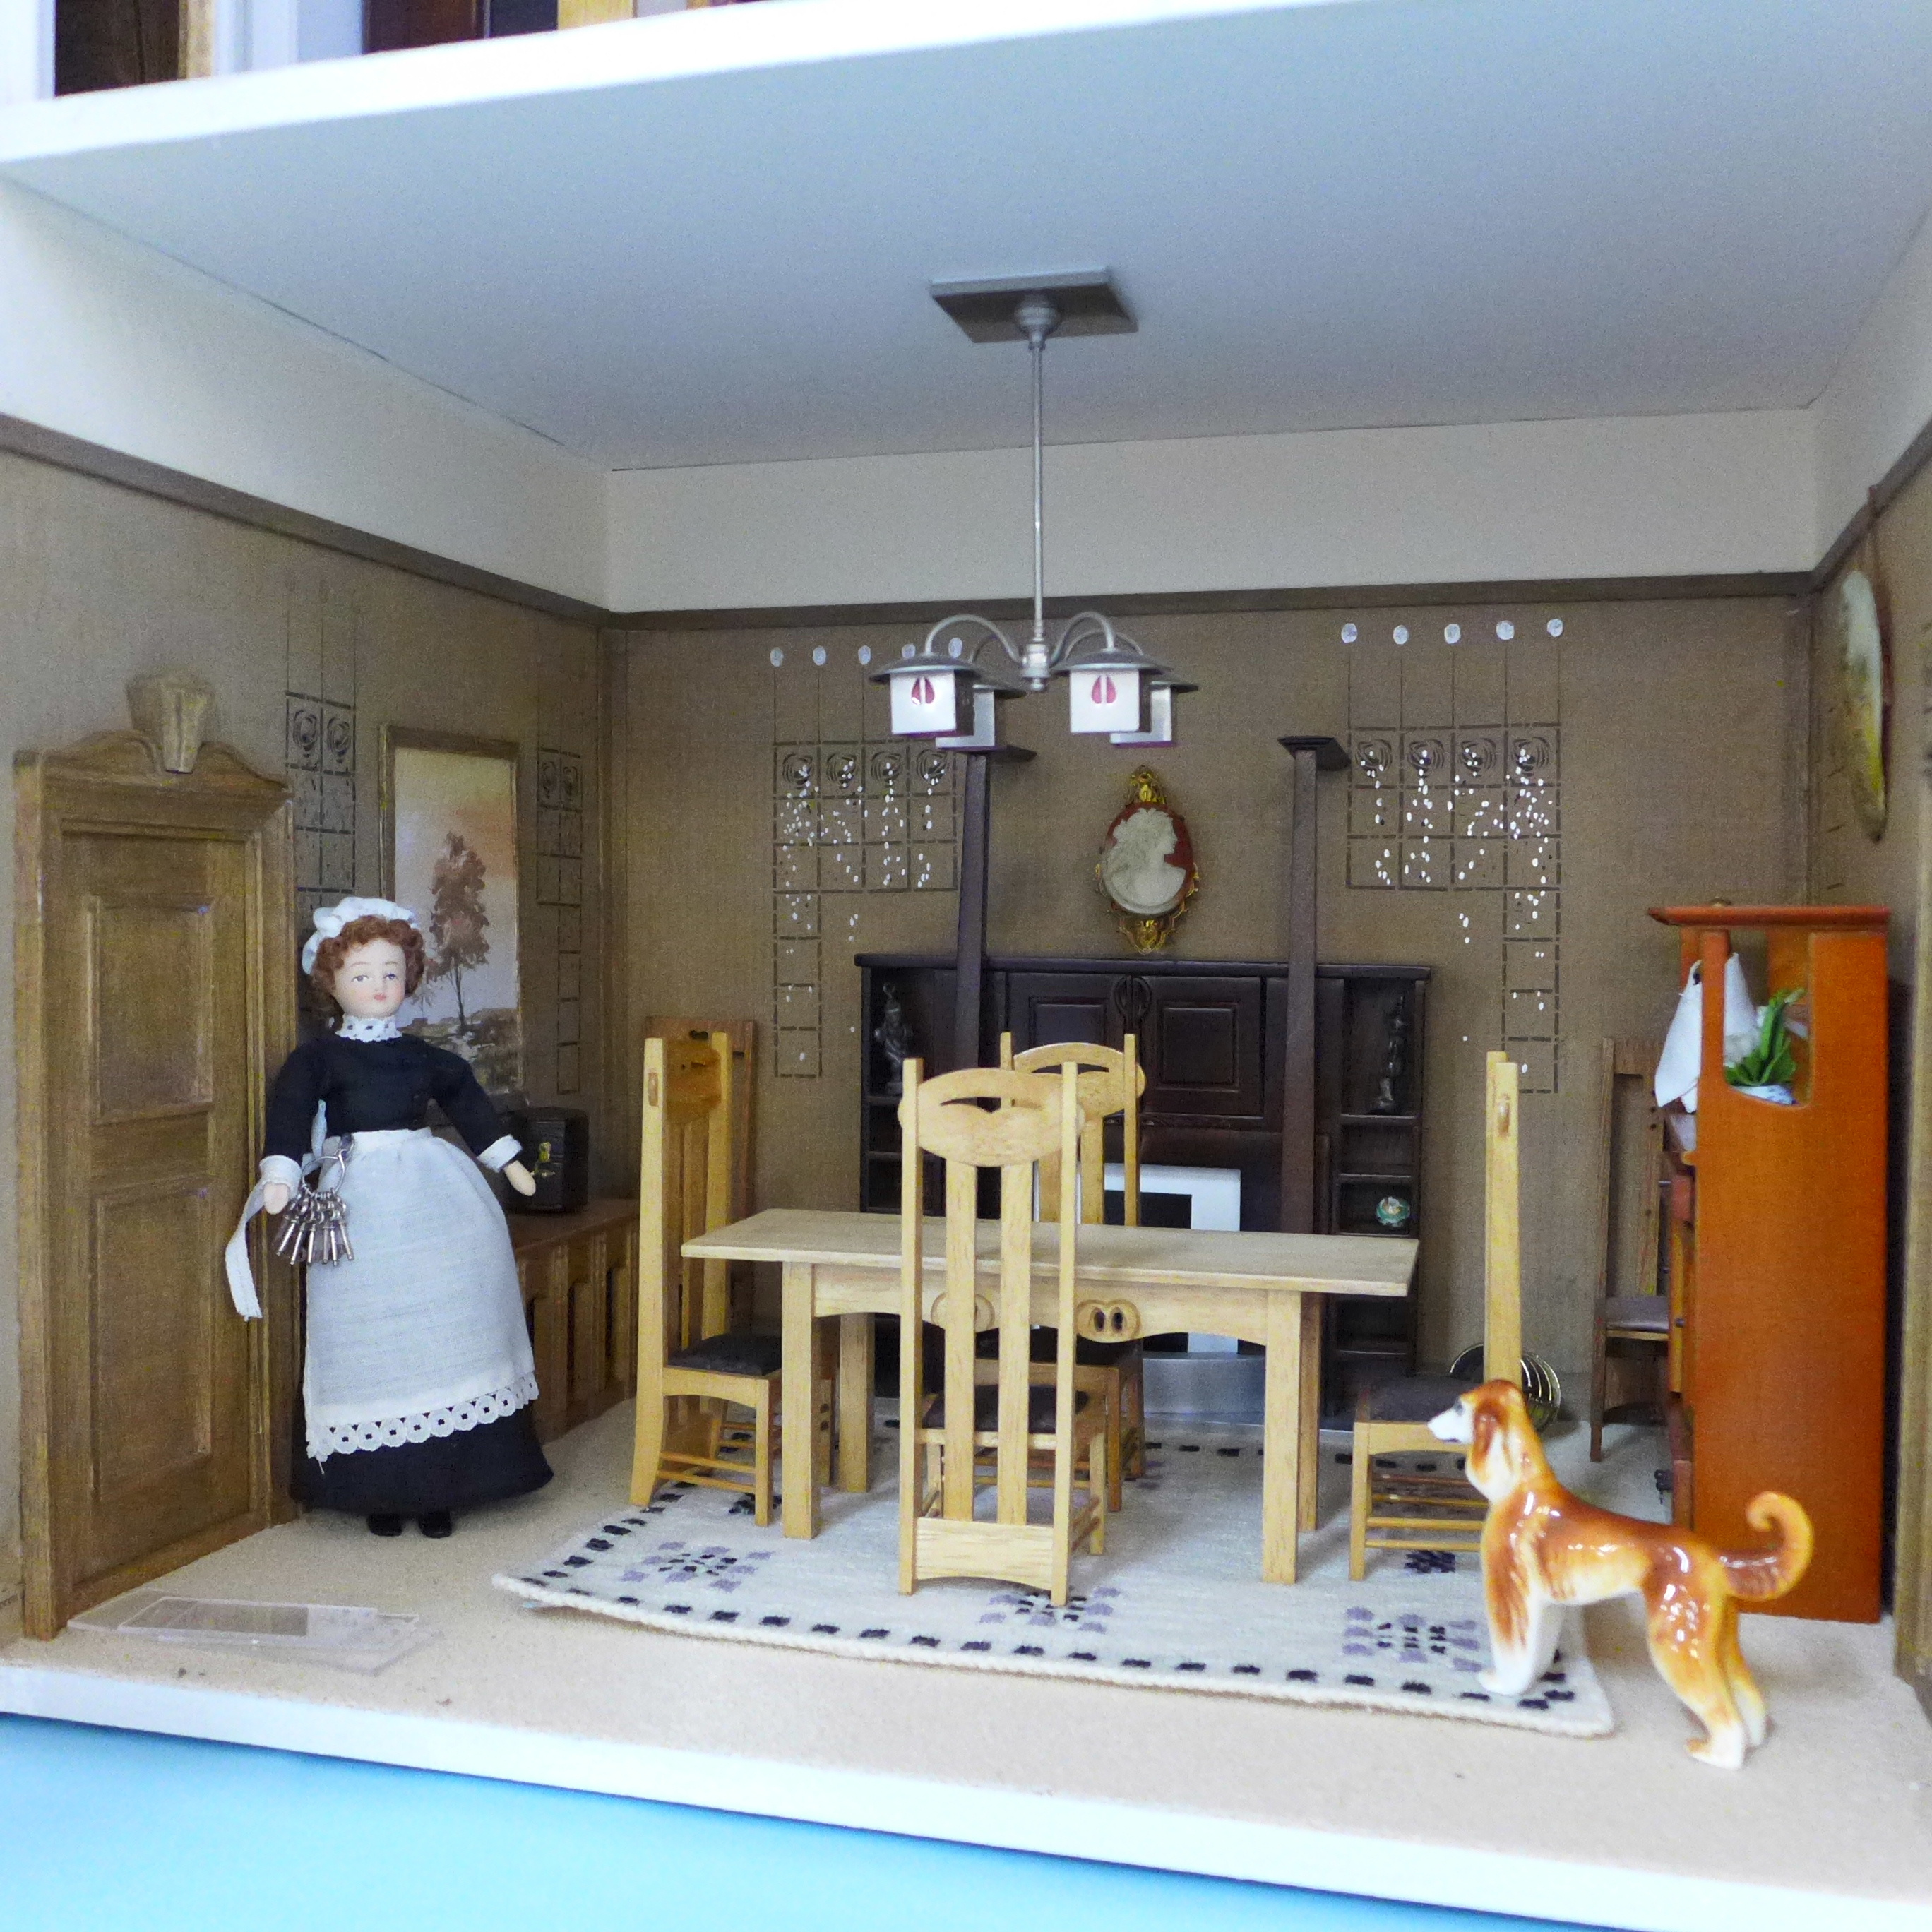 A Dolls House Emporiun Charles Rennie Makintosh-style Scottish House and Furniture. Assembled from a - Image 12 of 18